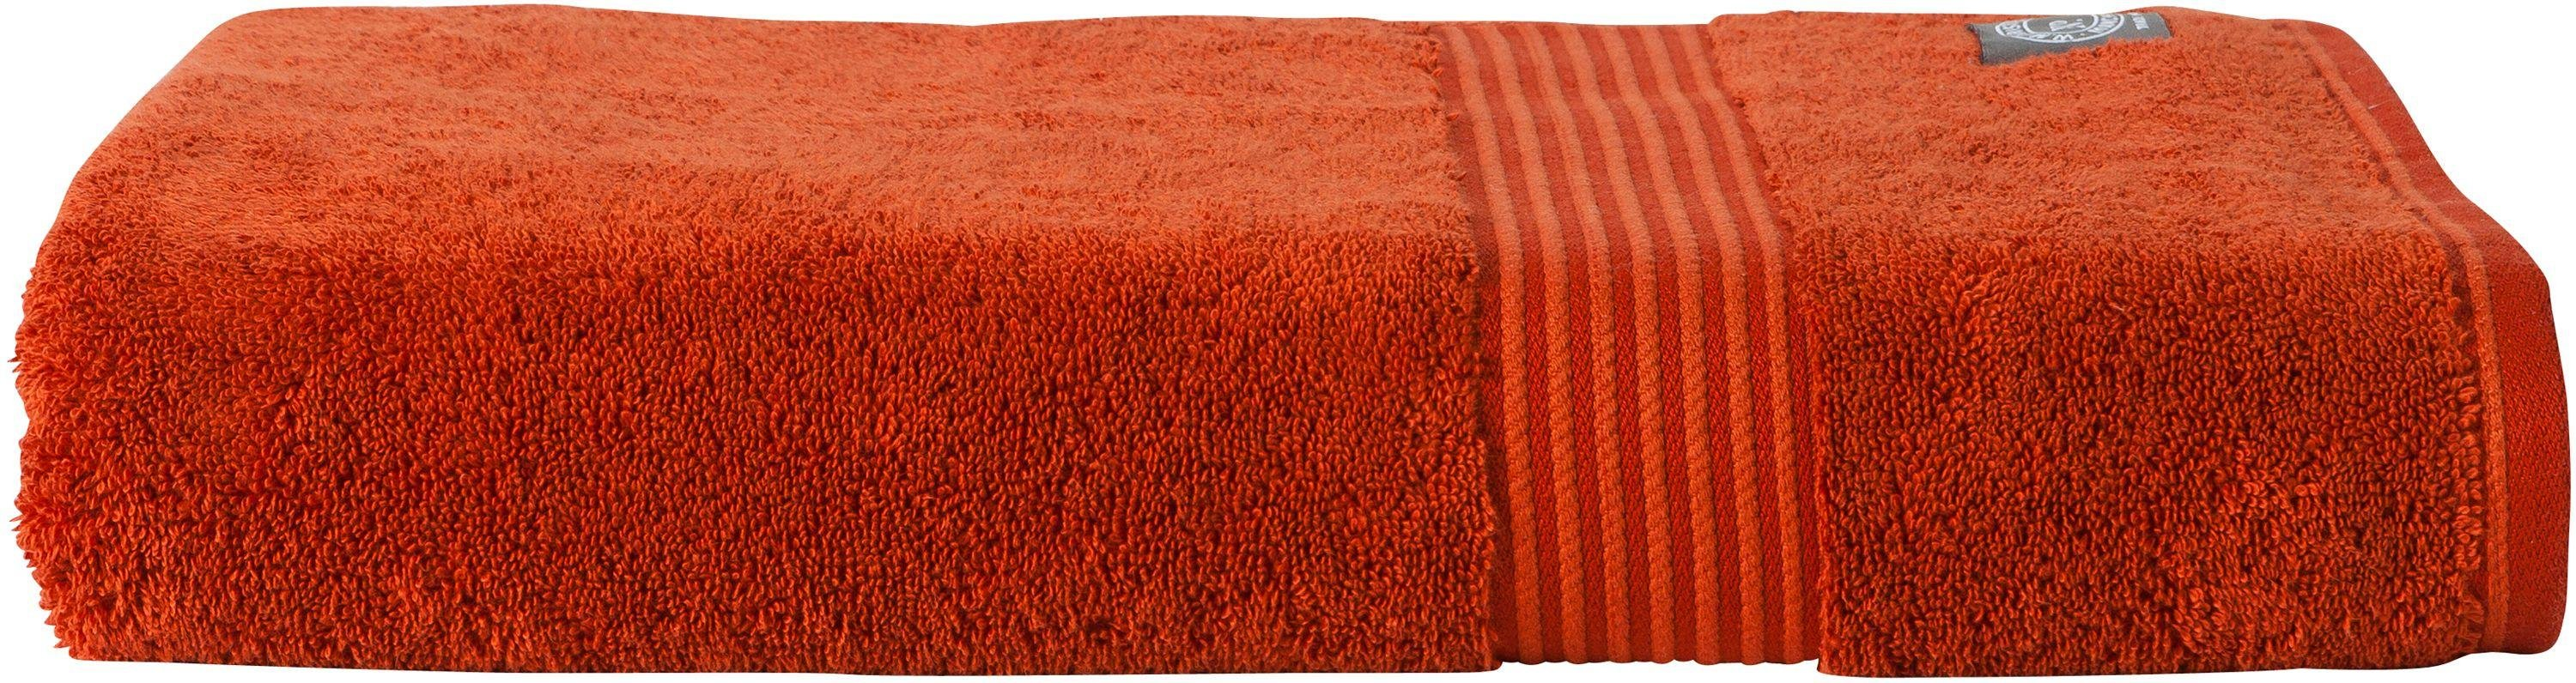 Image of Christy - Supreme Hygro - Bath Sheet - Paprika